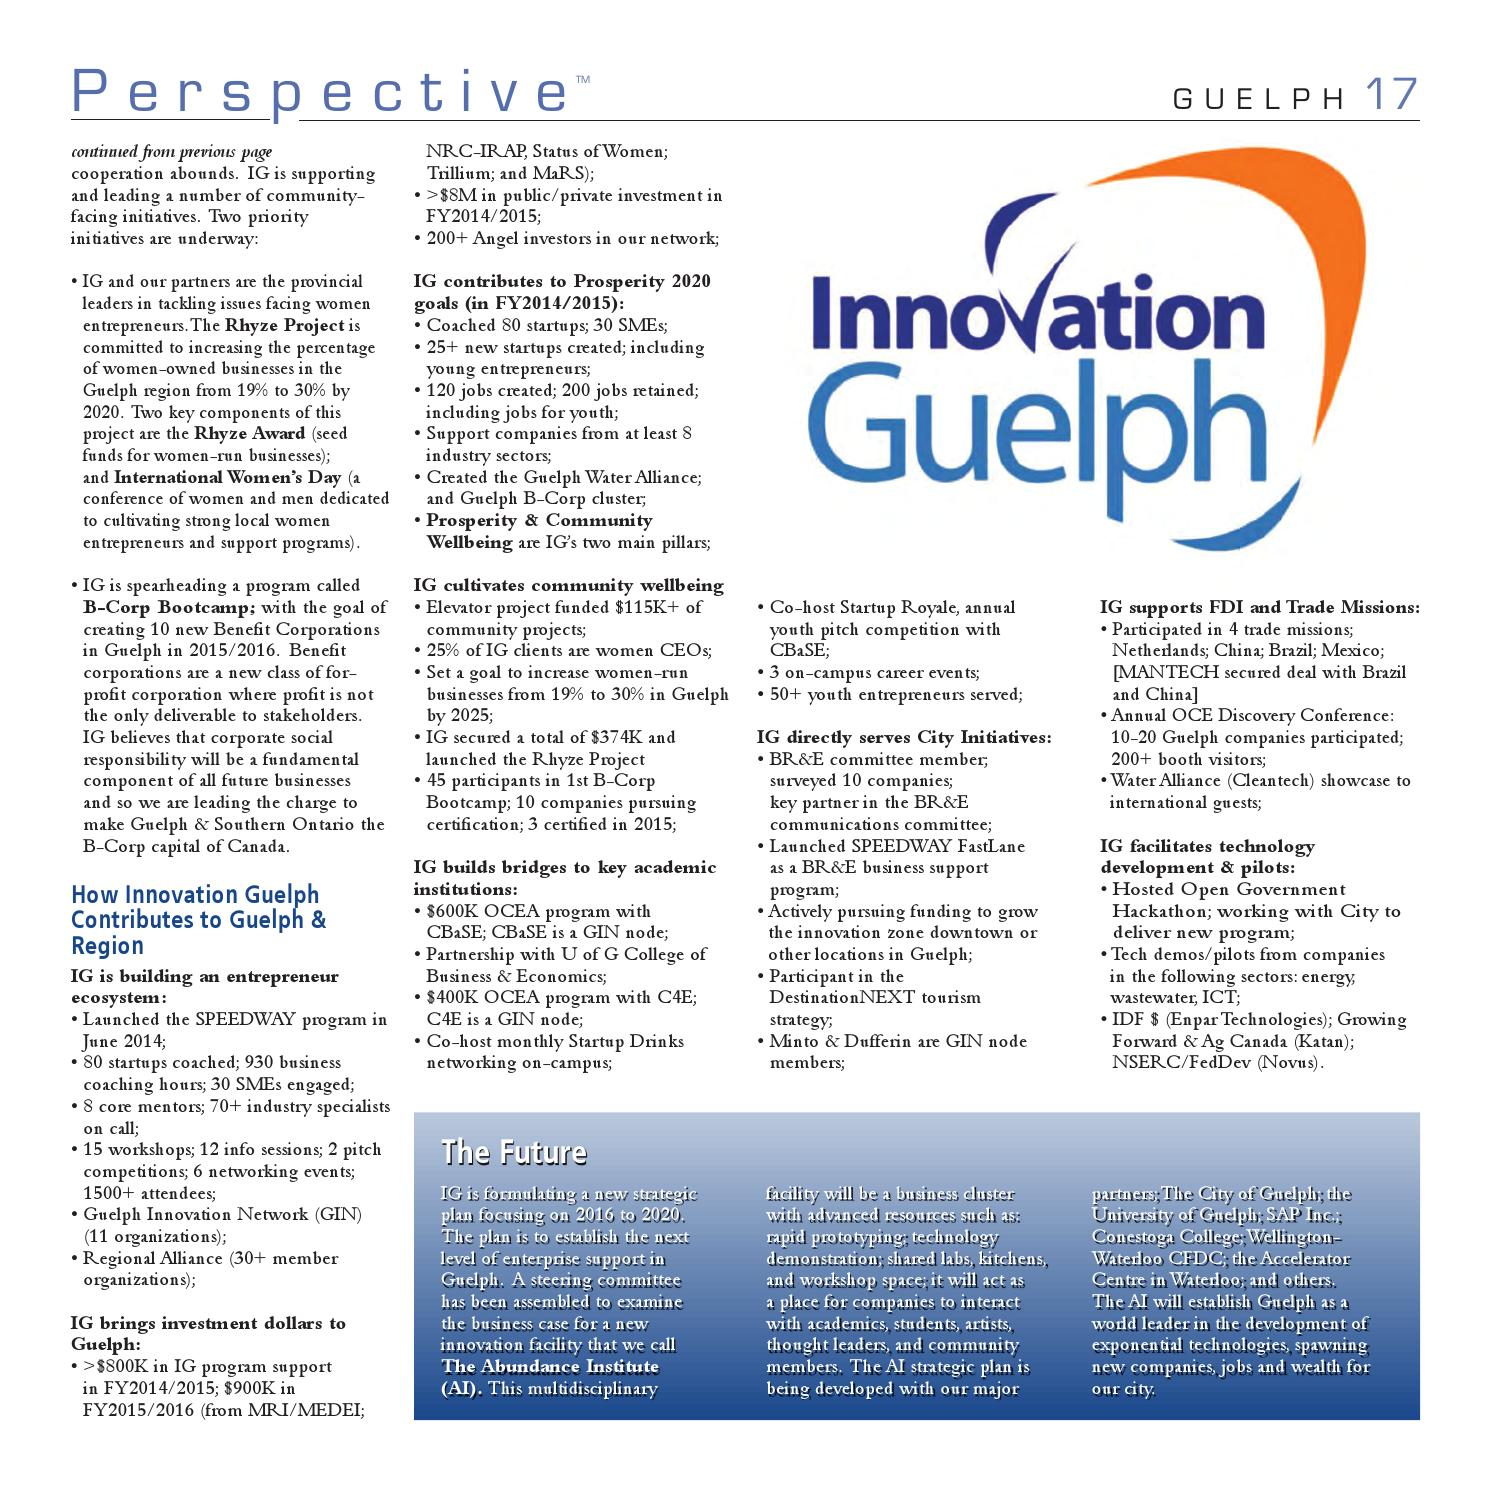 Guelph 2015 Perspective